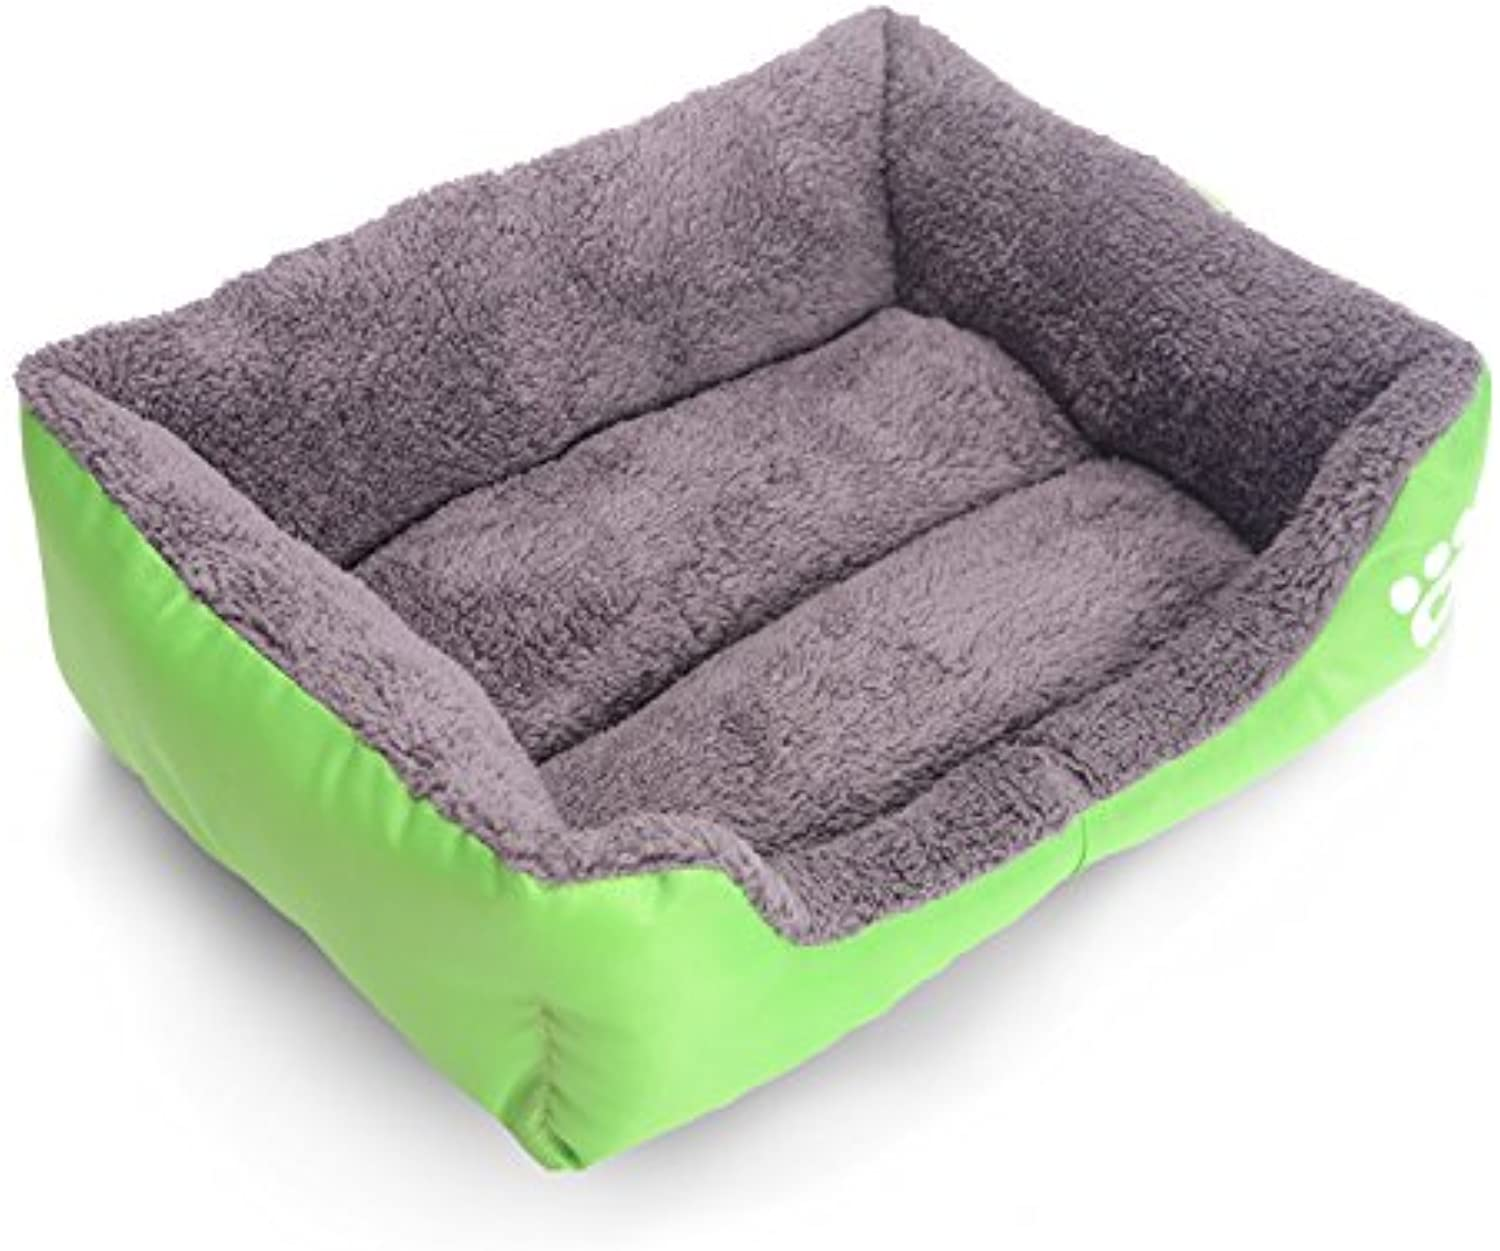 CHONGWUCX Small and mediumsized dog Teddy Bixu dirtproof warm pet dog kennel, l